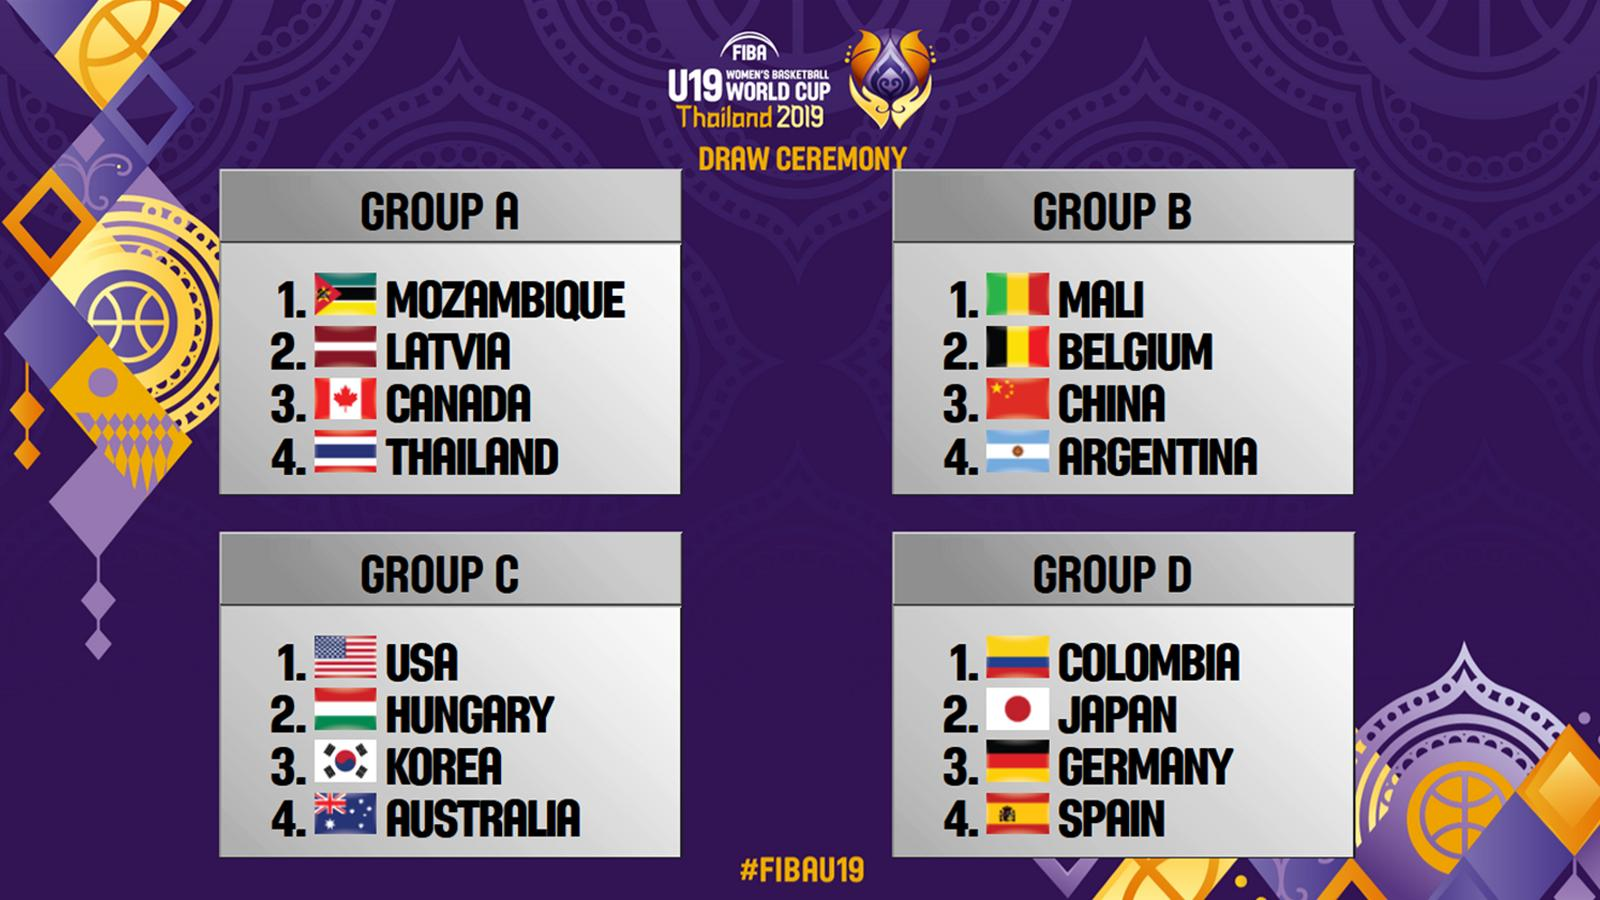 Canada draws Group A for FIBA U19 Women's Basketball World Cup 2019